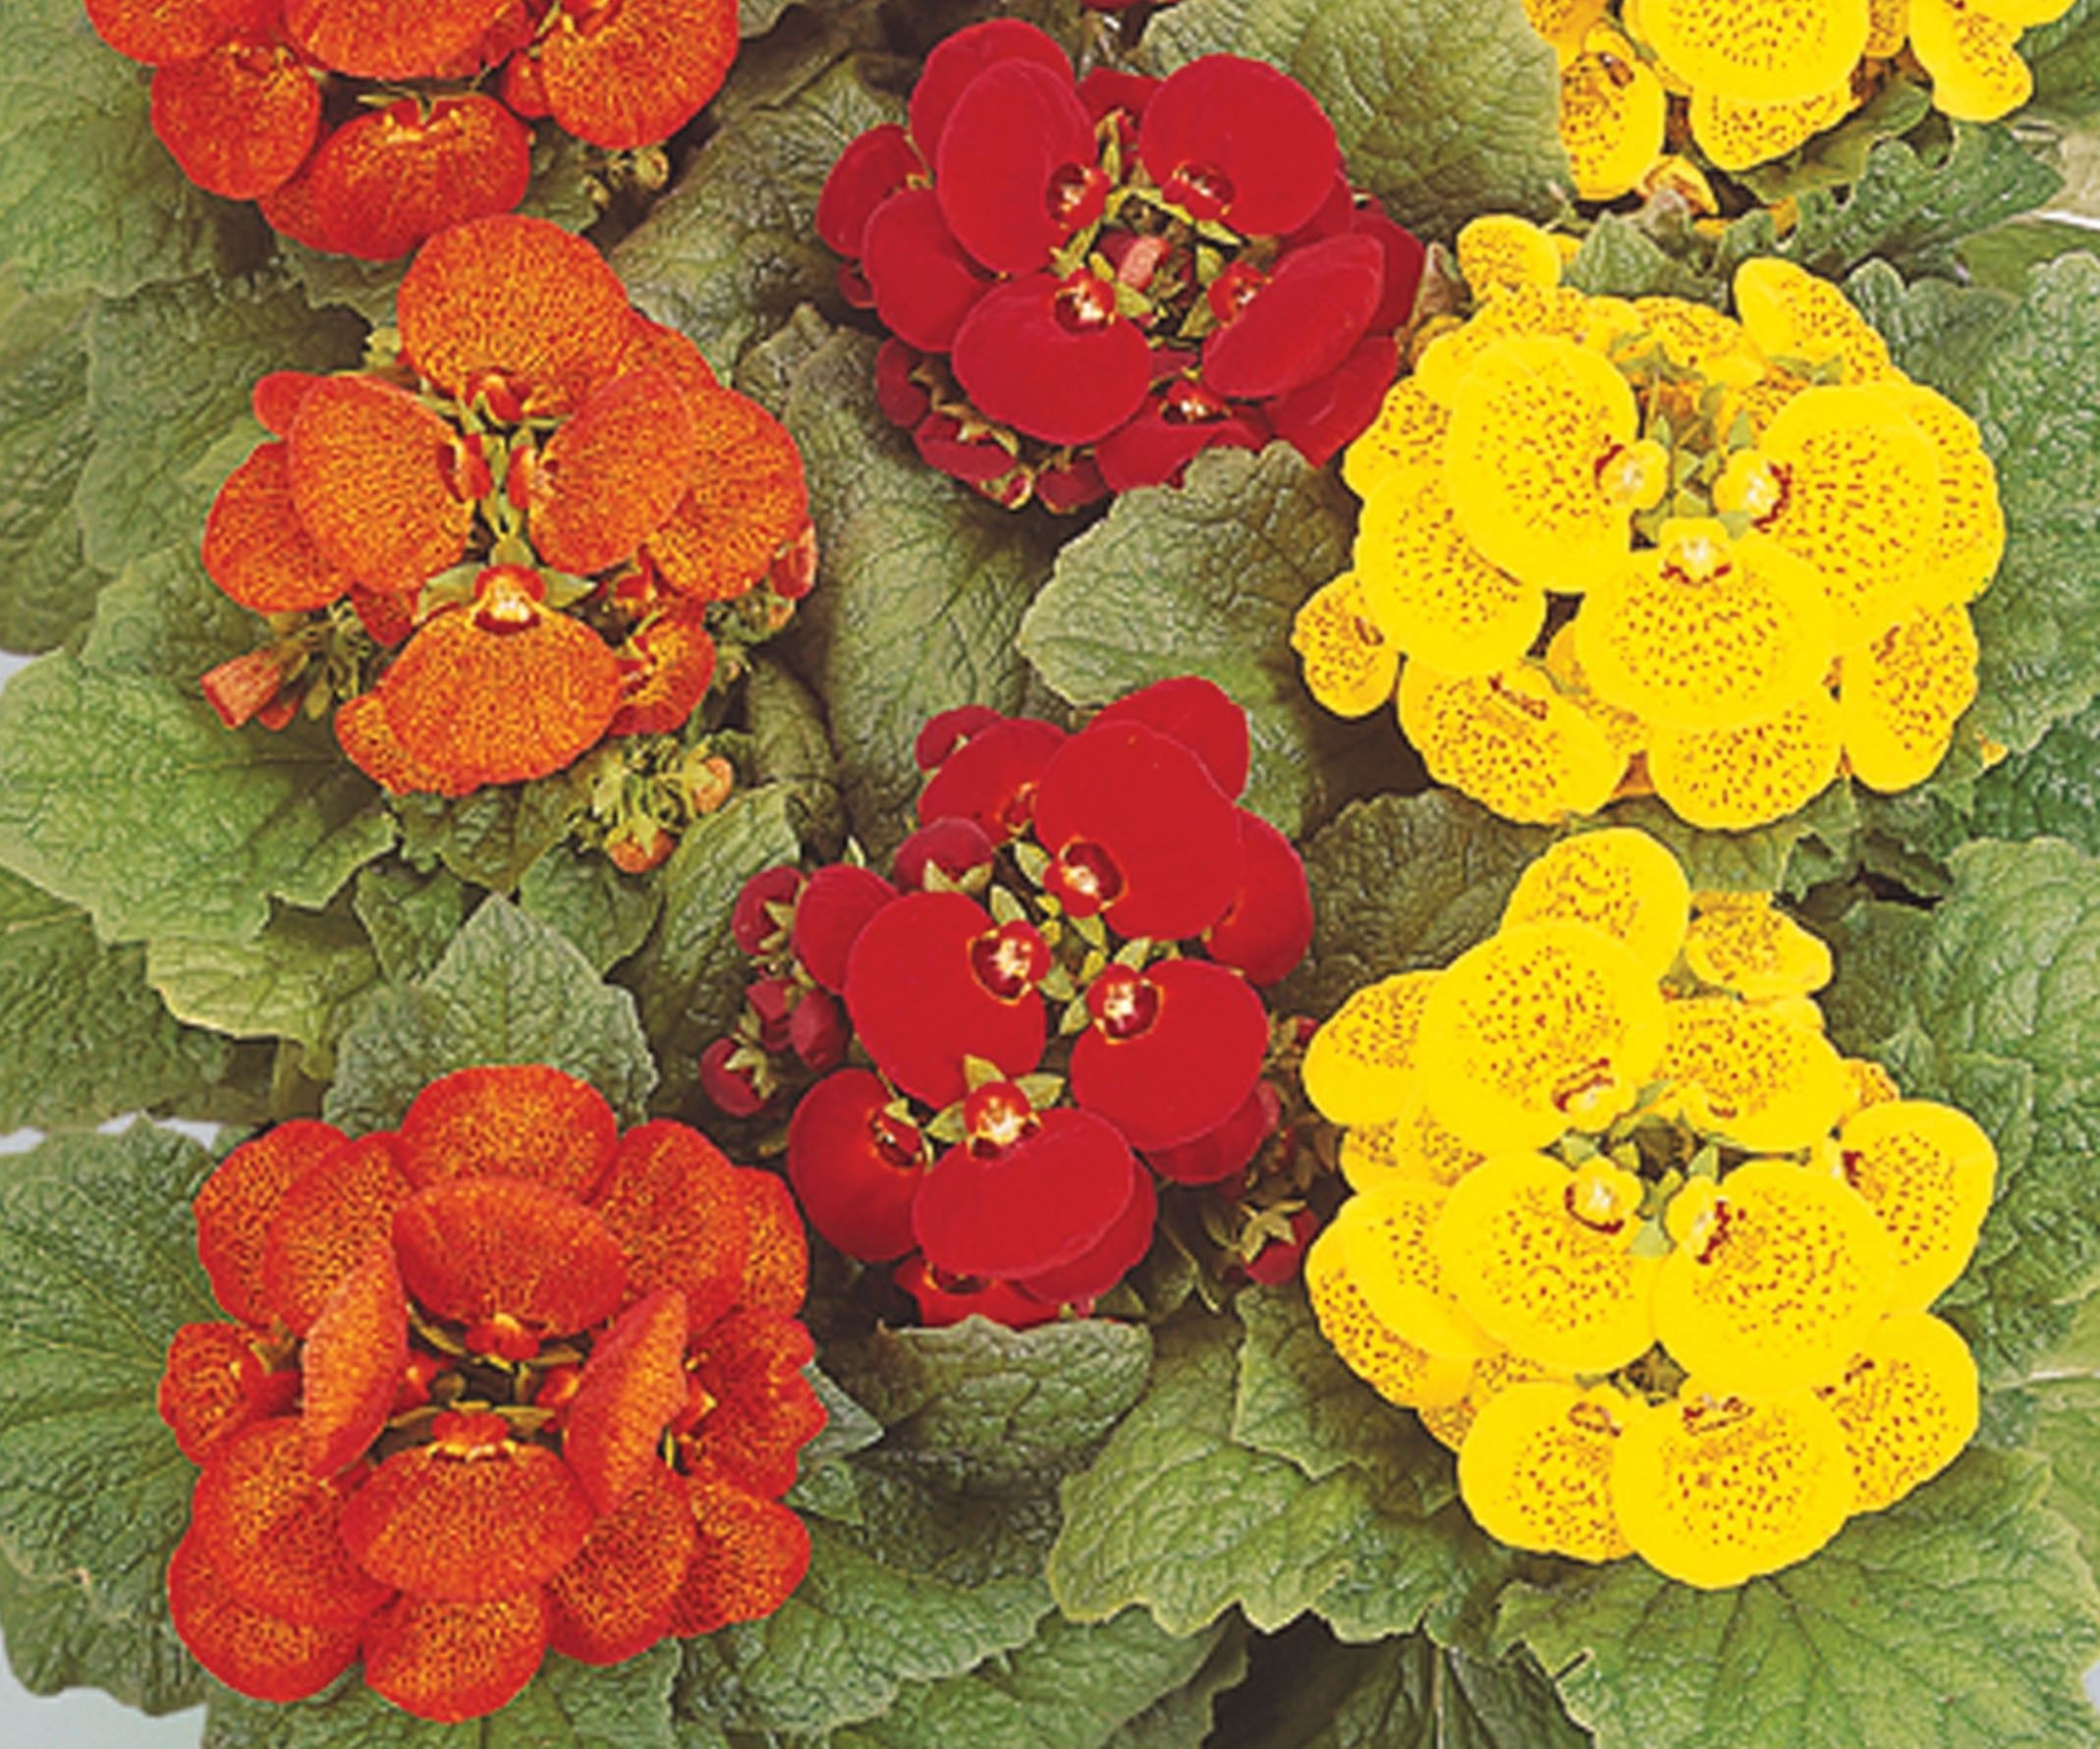 Also known as pocketbook plant or slipper flower An abundance of pouch type polka dotted flowers are borne on pact plants in shades of red orange